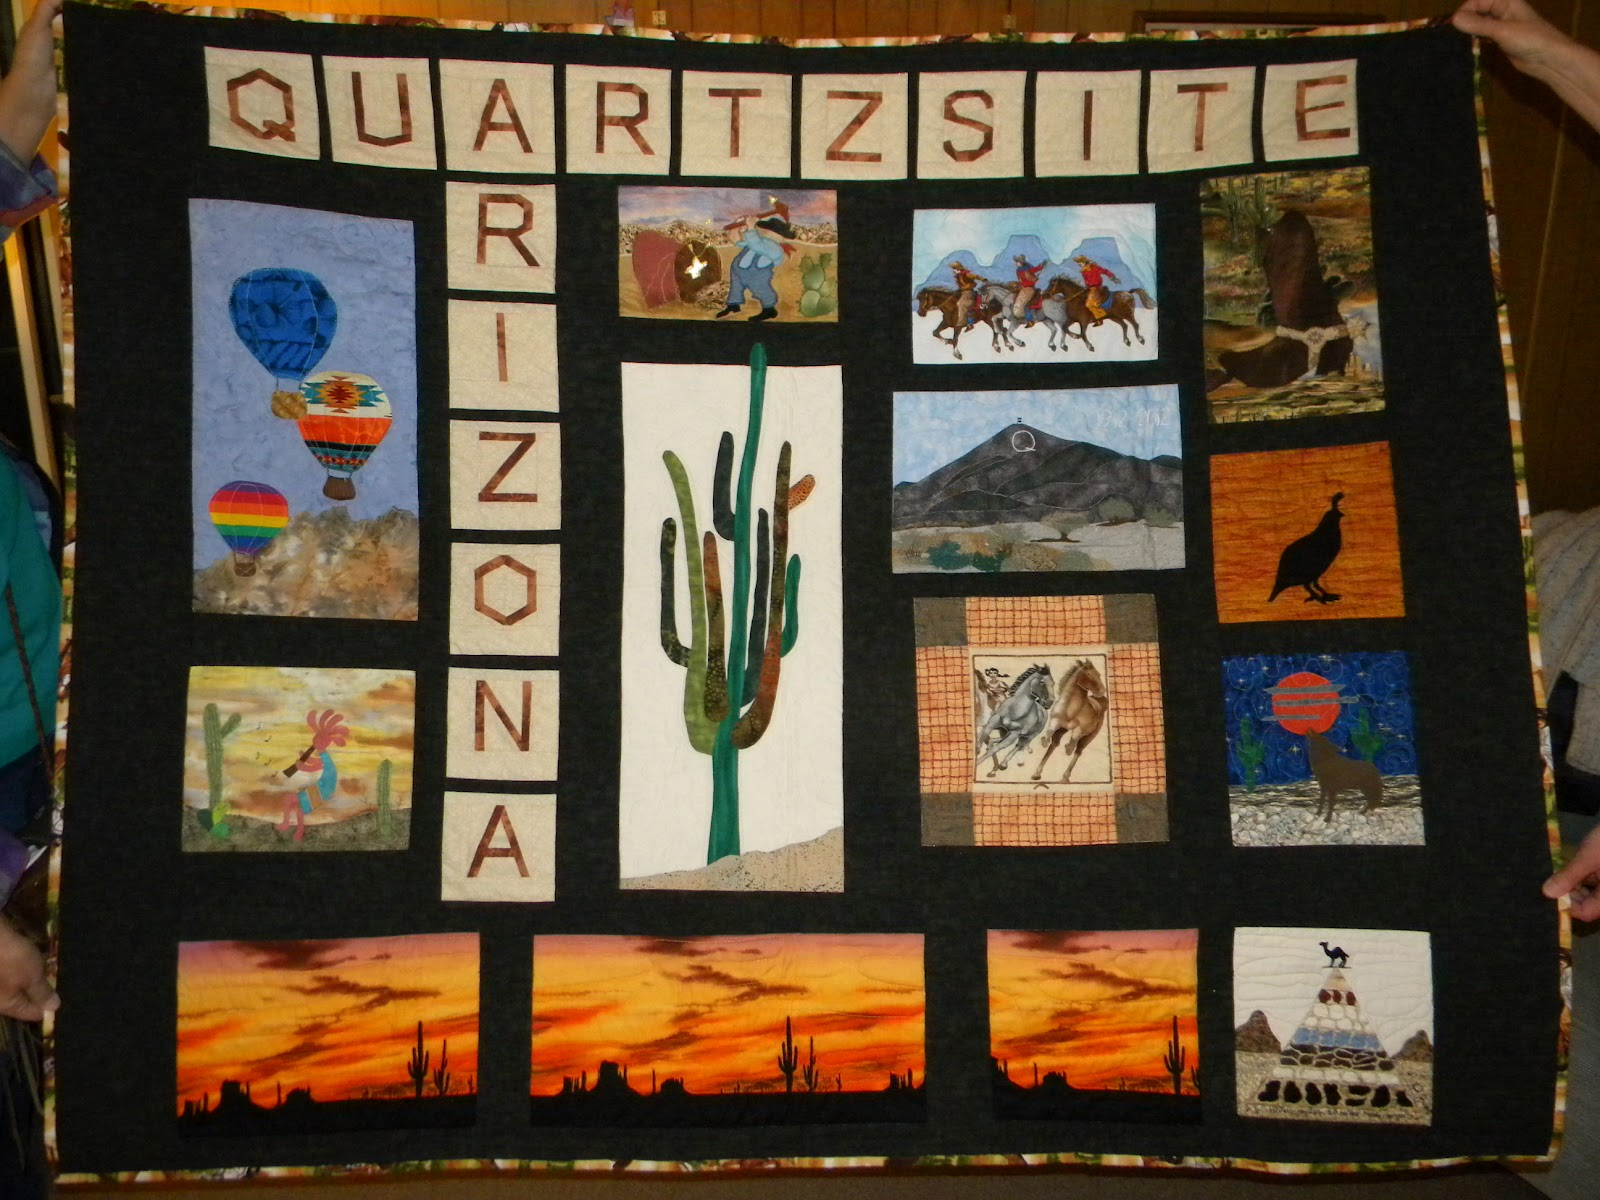 quartzsite arizona swap meet 2013 nfl